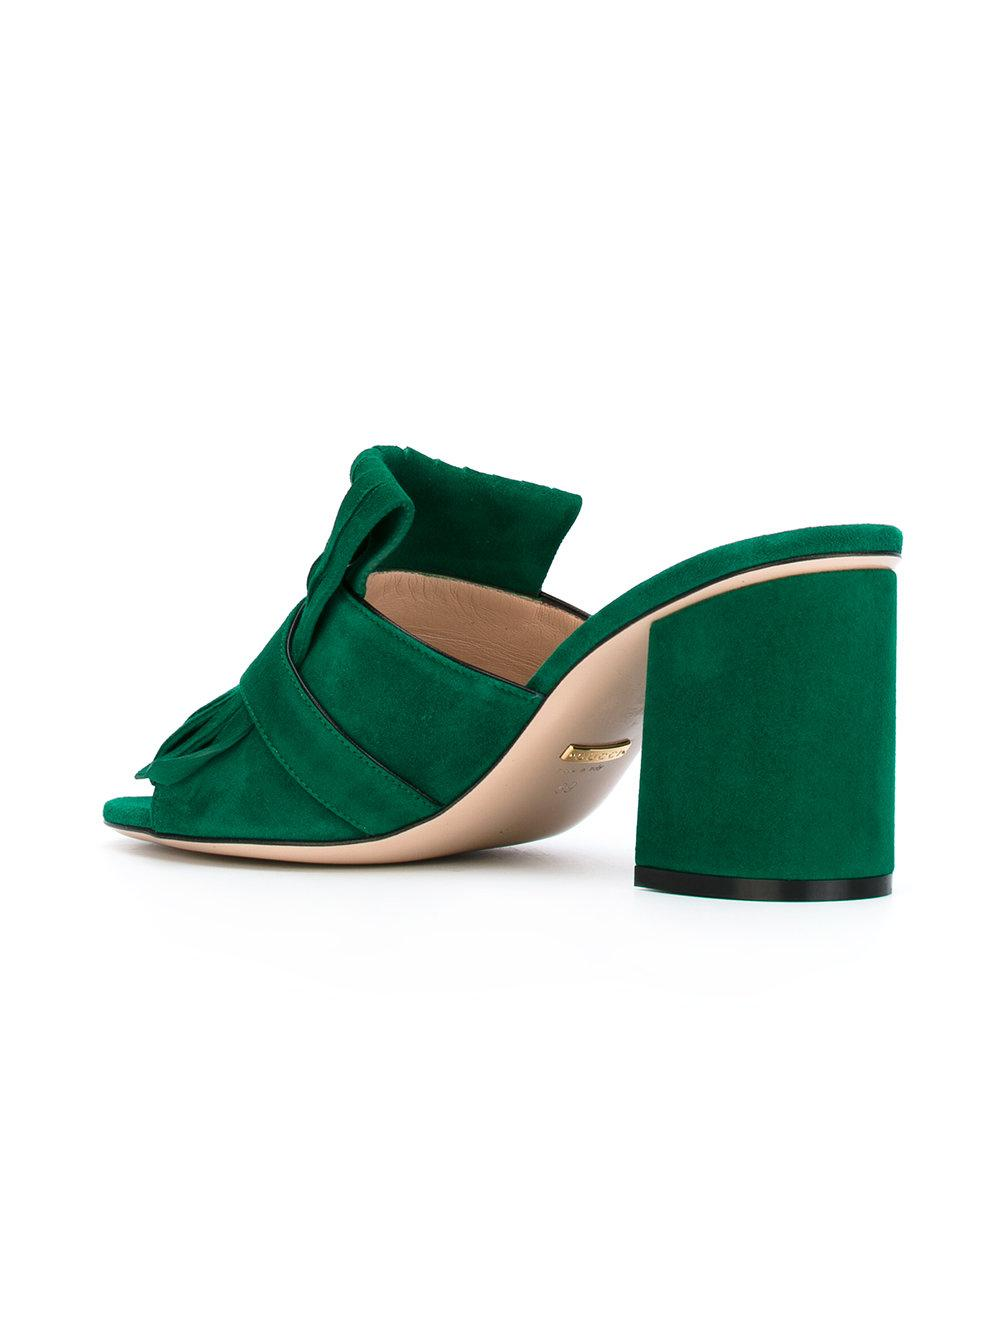 c6ca661b171 Lyst - Gucci Marmont Gg Kiltie Suede Block Heel Mules in Green